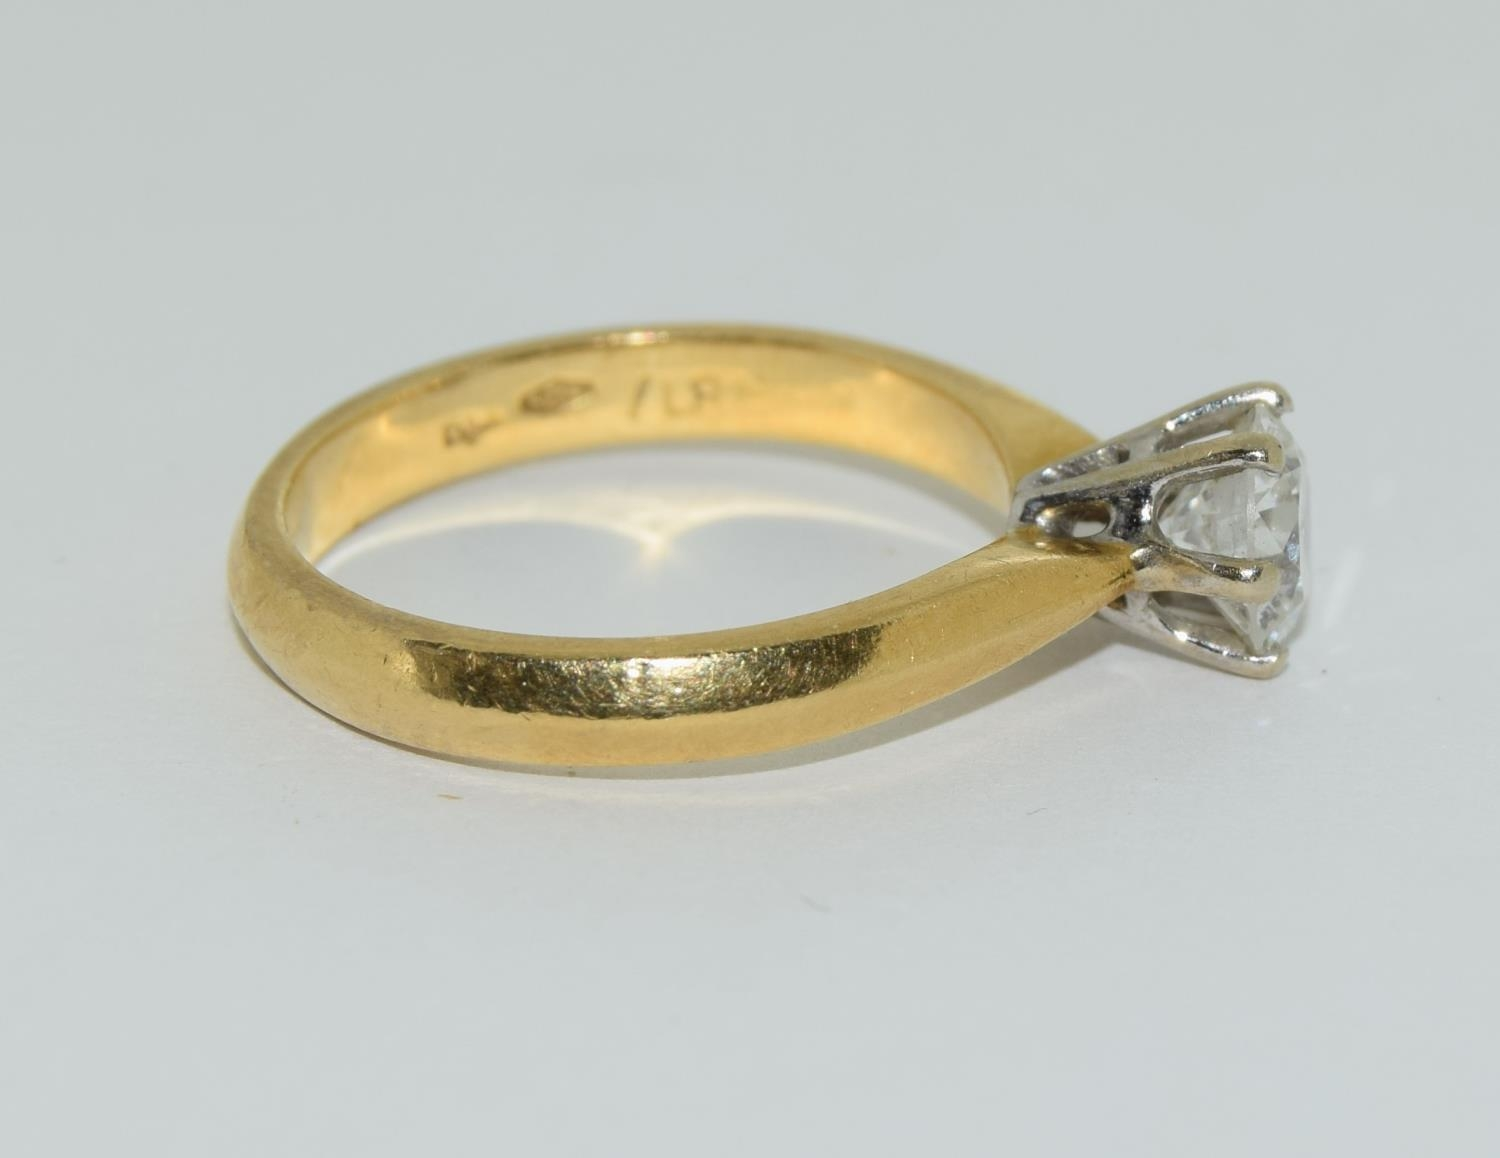 An 18ct white gold ladies diamond solitaire ring 0.75ct Approx., Size M. - Image 2 of 6